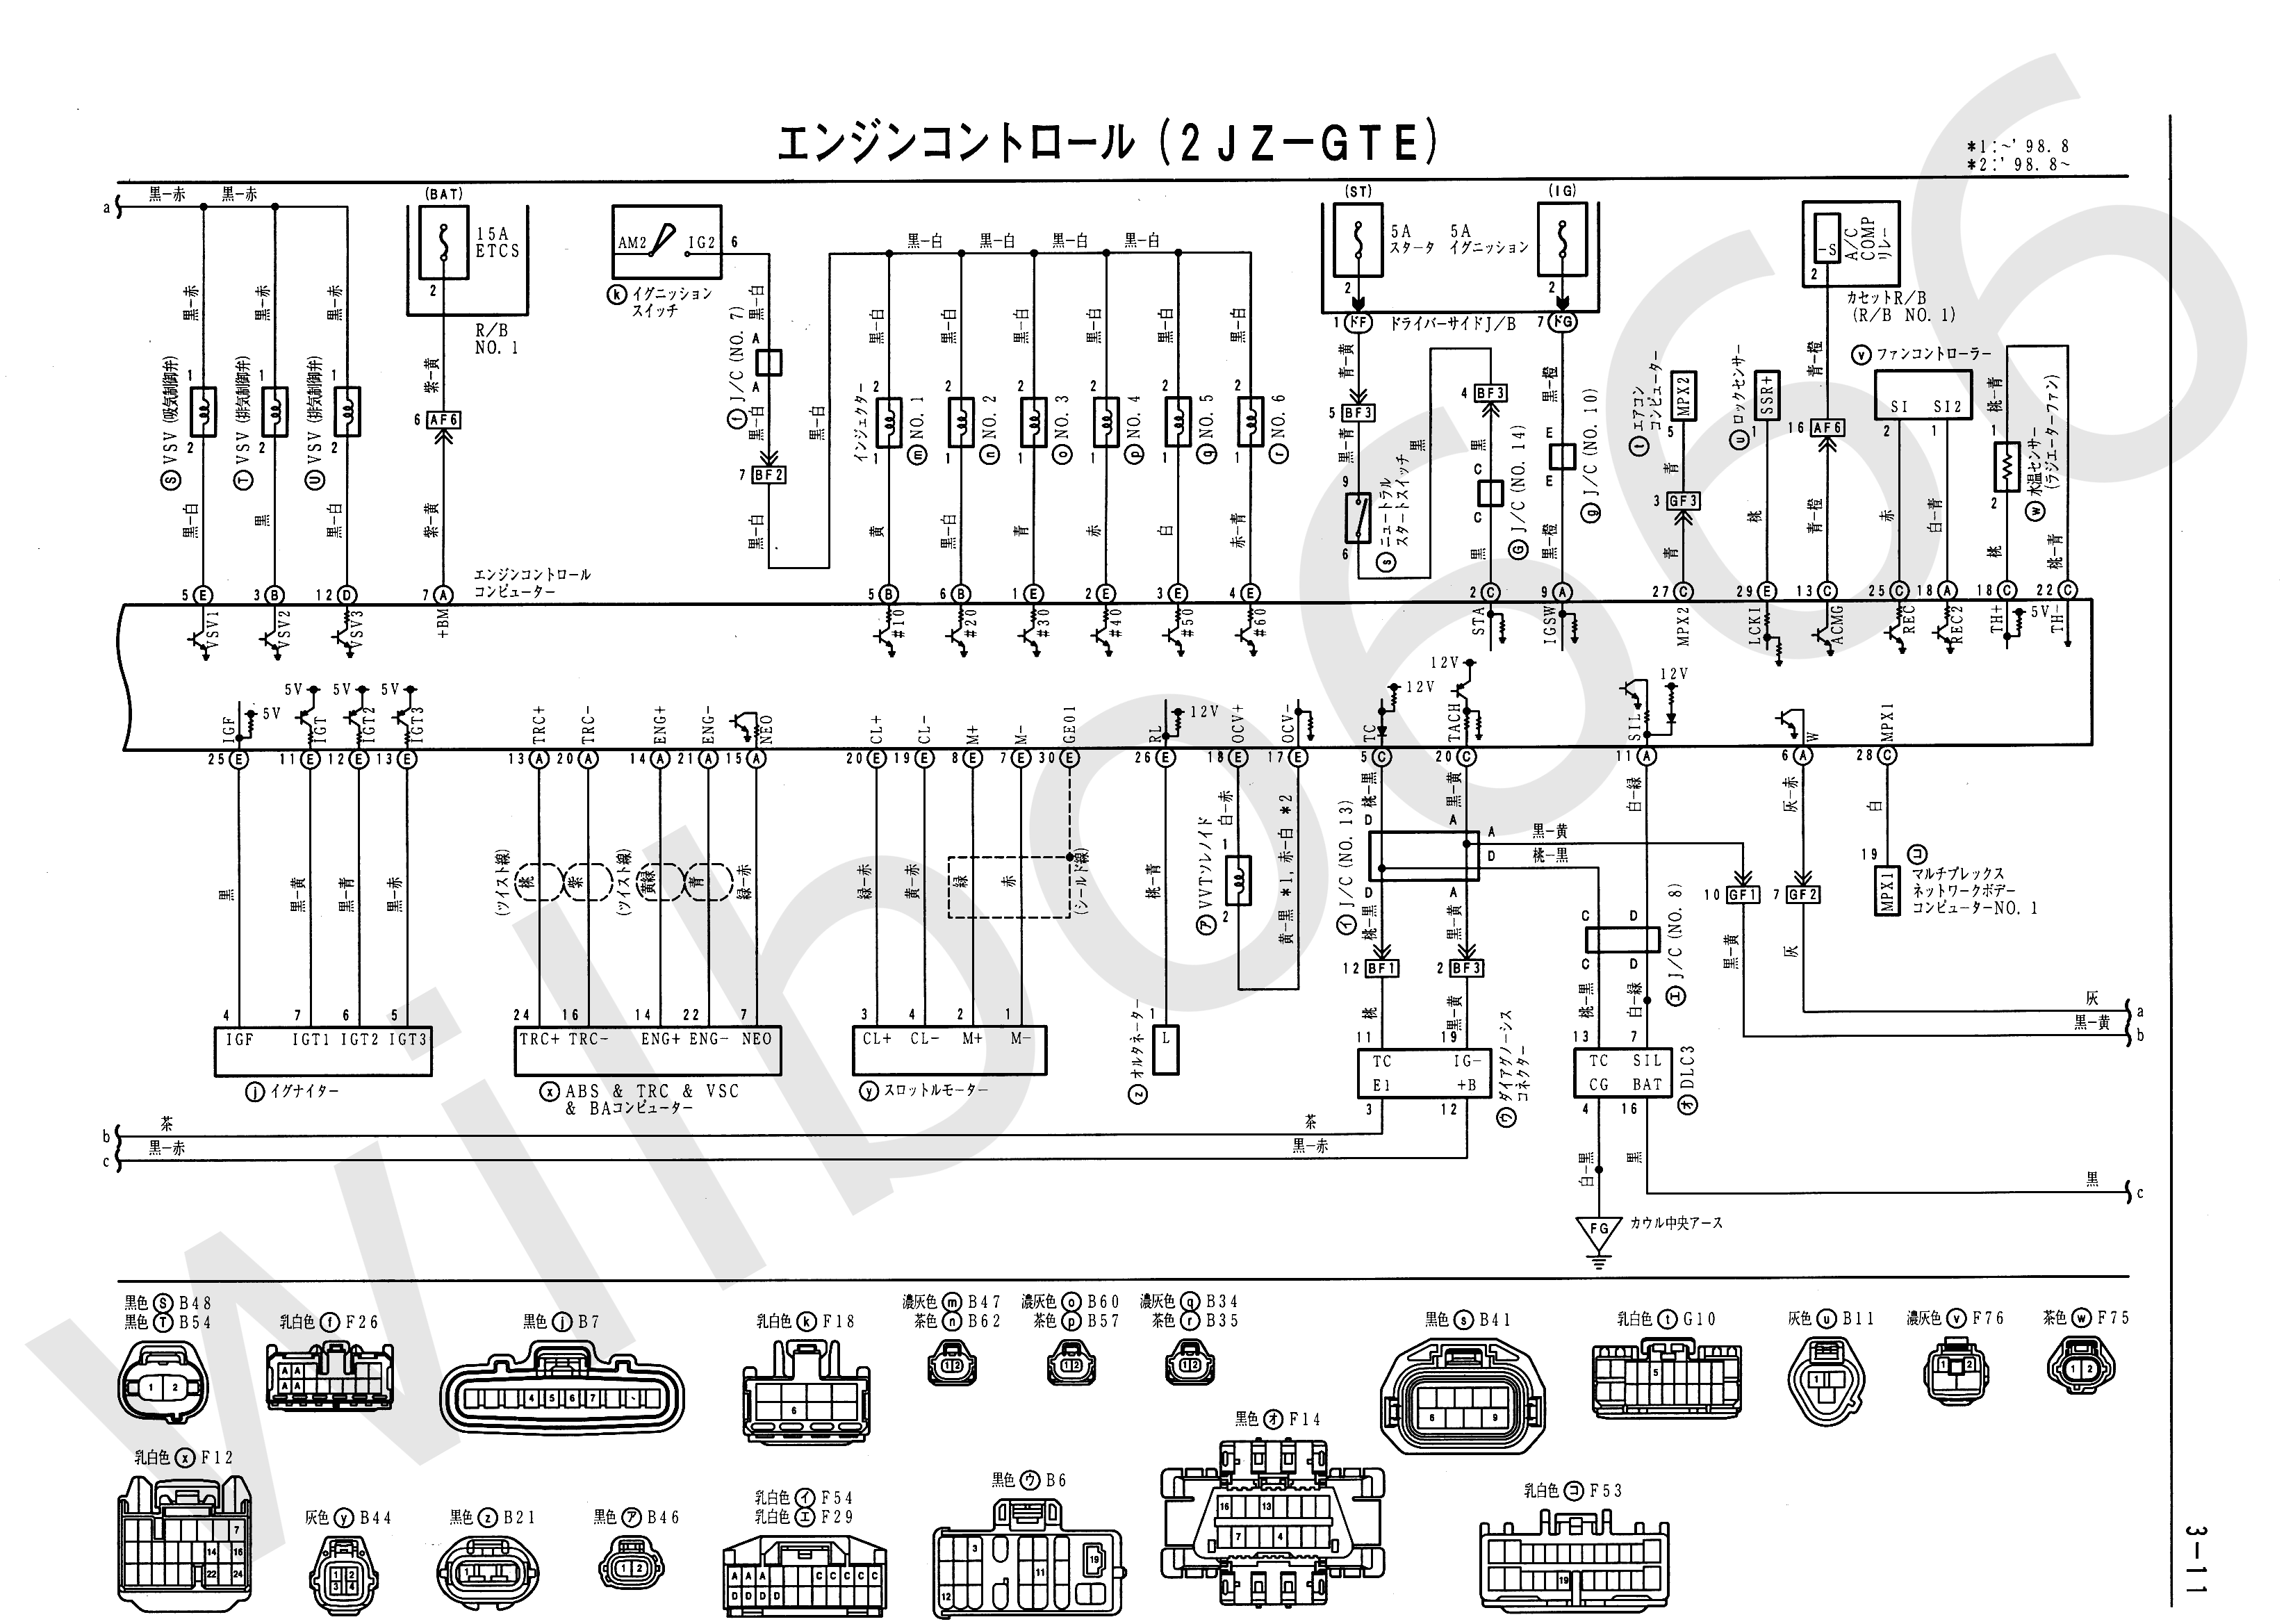 Wiring Diagram 2001 Lexus Is300 Library Spark Plug Wire Harness 1996 Ls400 Engine 2000